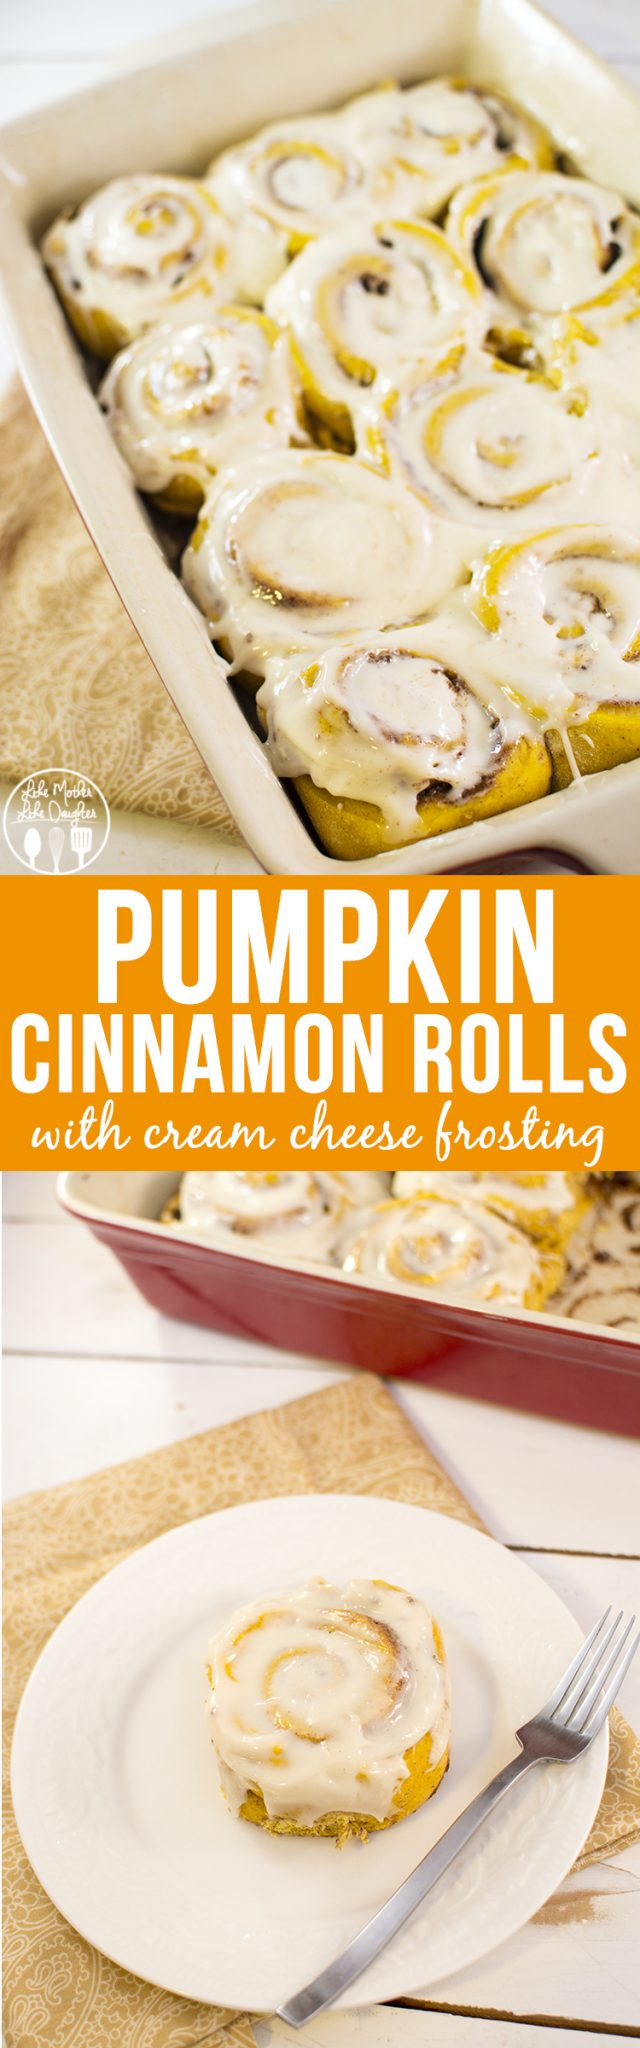 Pumpkin Cinnamon Rolls - these delicious pumpkin cinnamon rolls are a fun twist on traditional cinnamon rolls and have the perfect fall flavors. All topped with an amazing cream cheese frosting. These are a must make this fall!